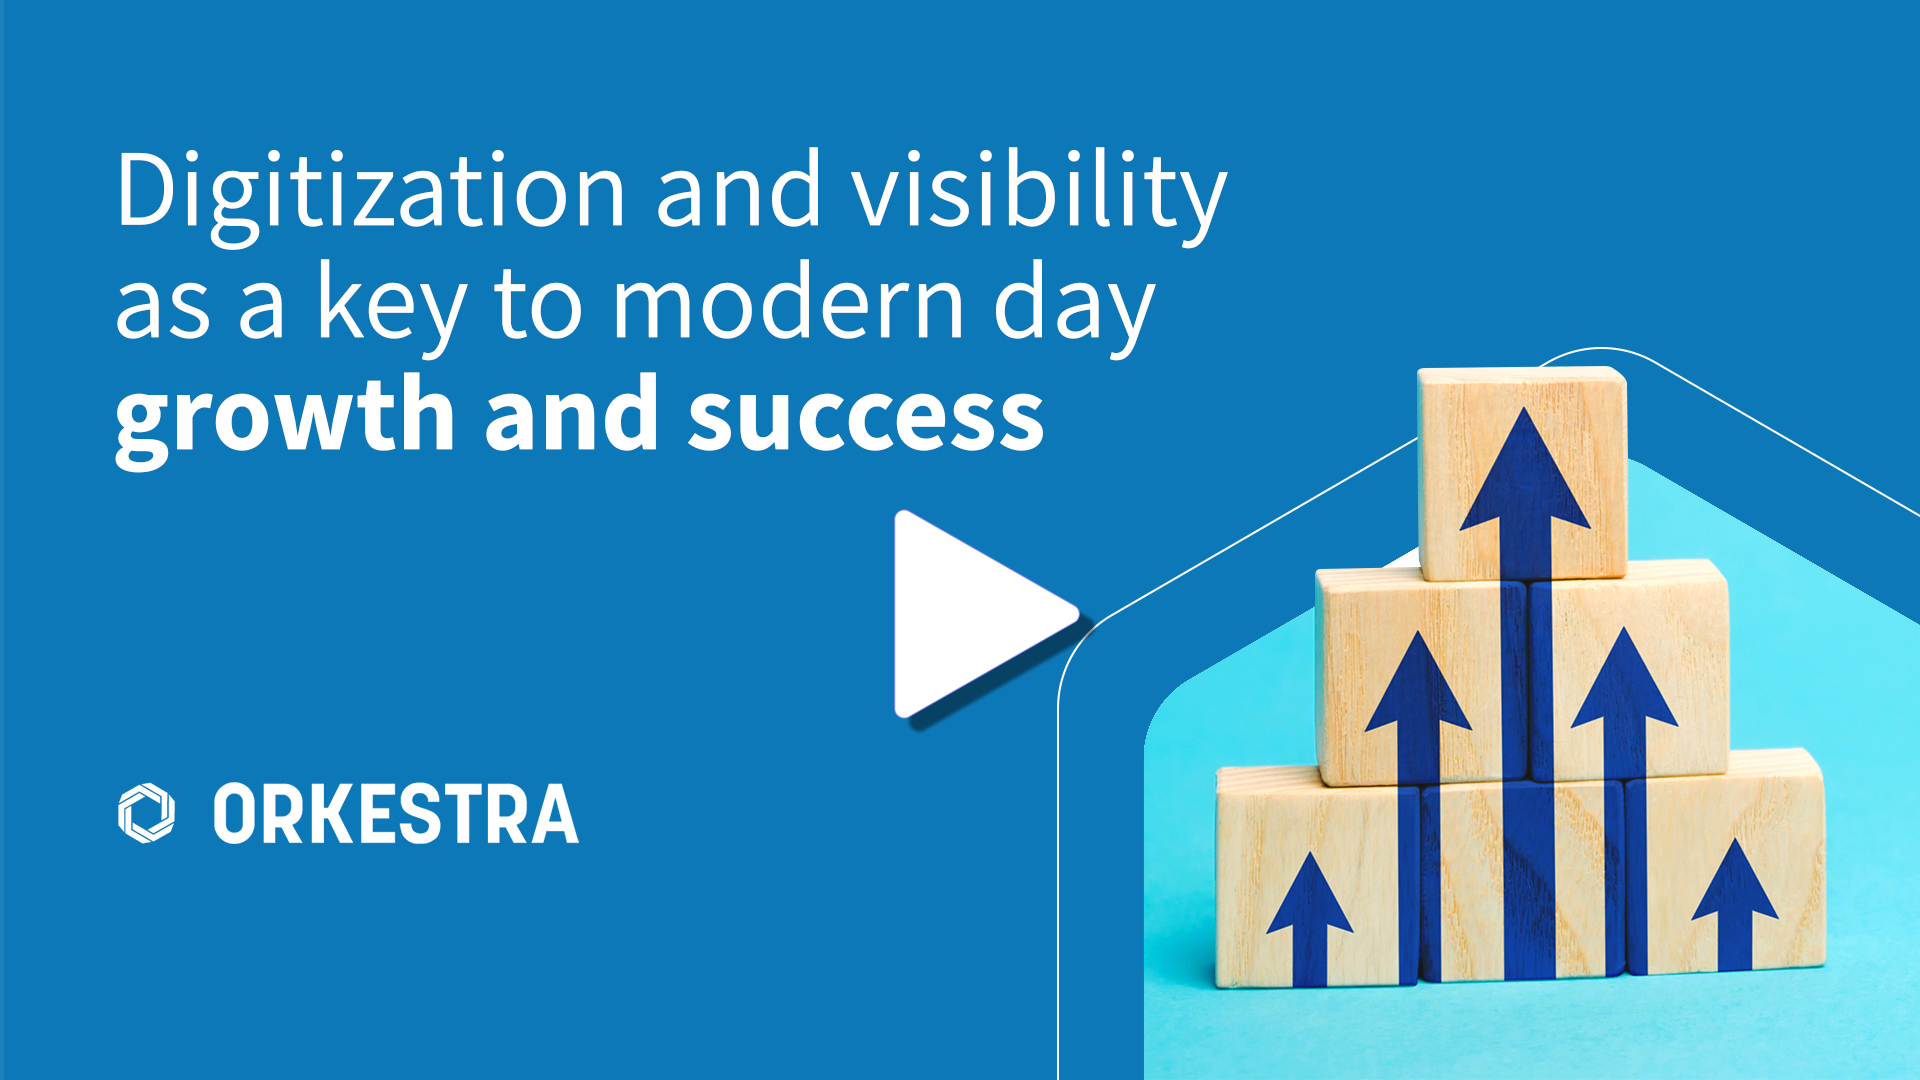 Understand why digitization is important in achieving modern day growth and success.